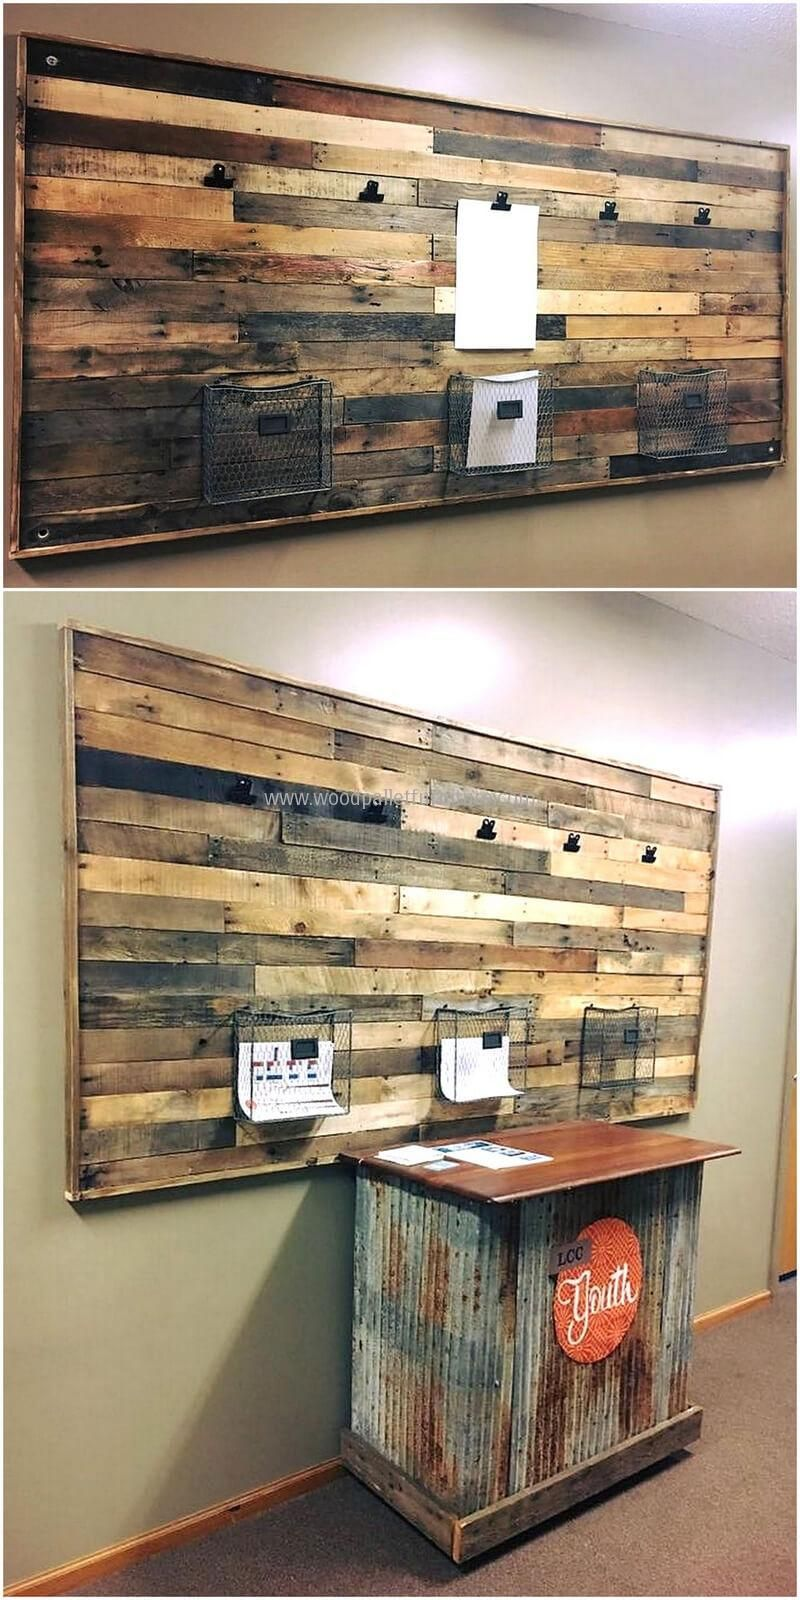 Have you heard about pallet wood notice